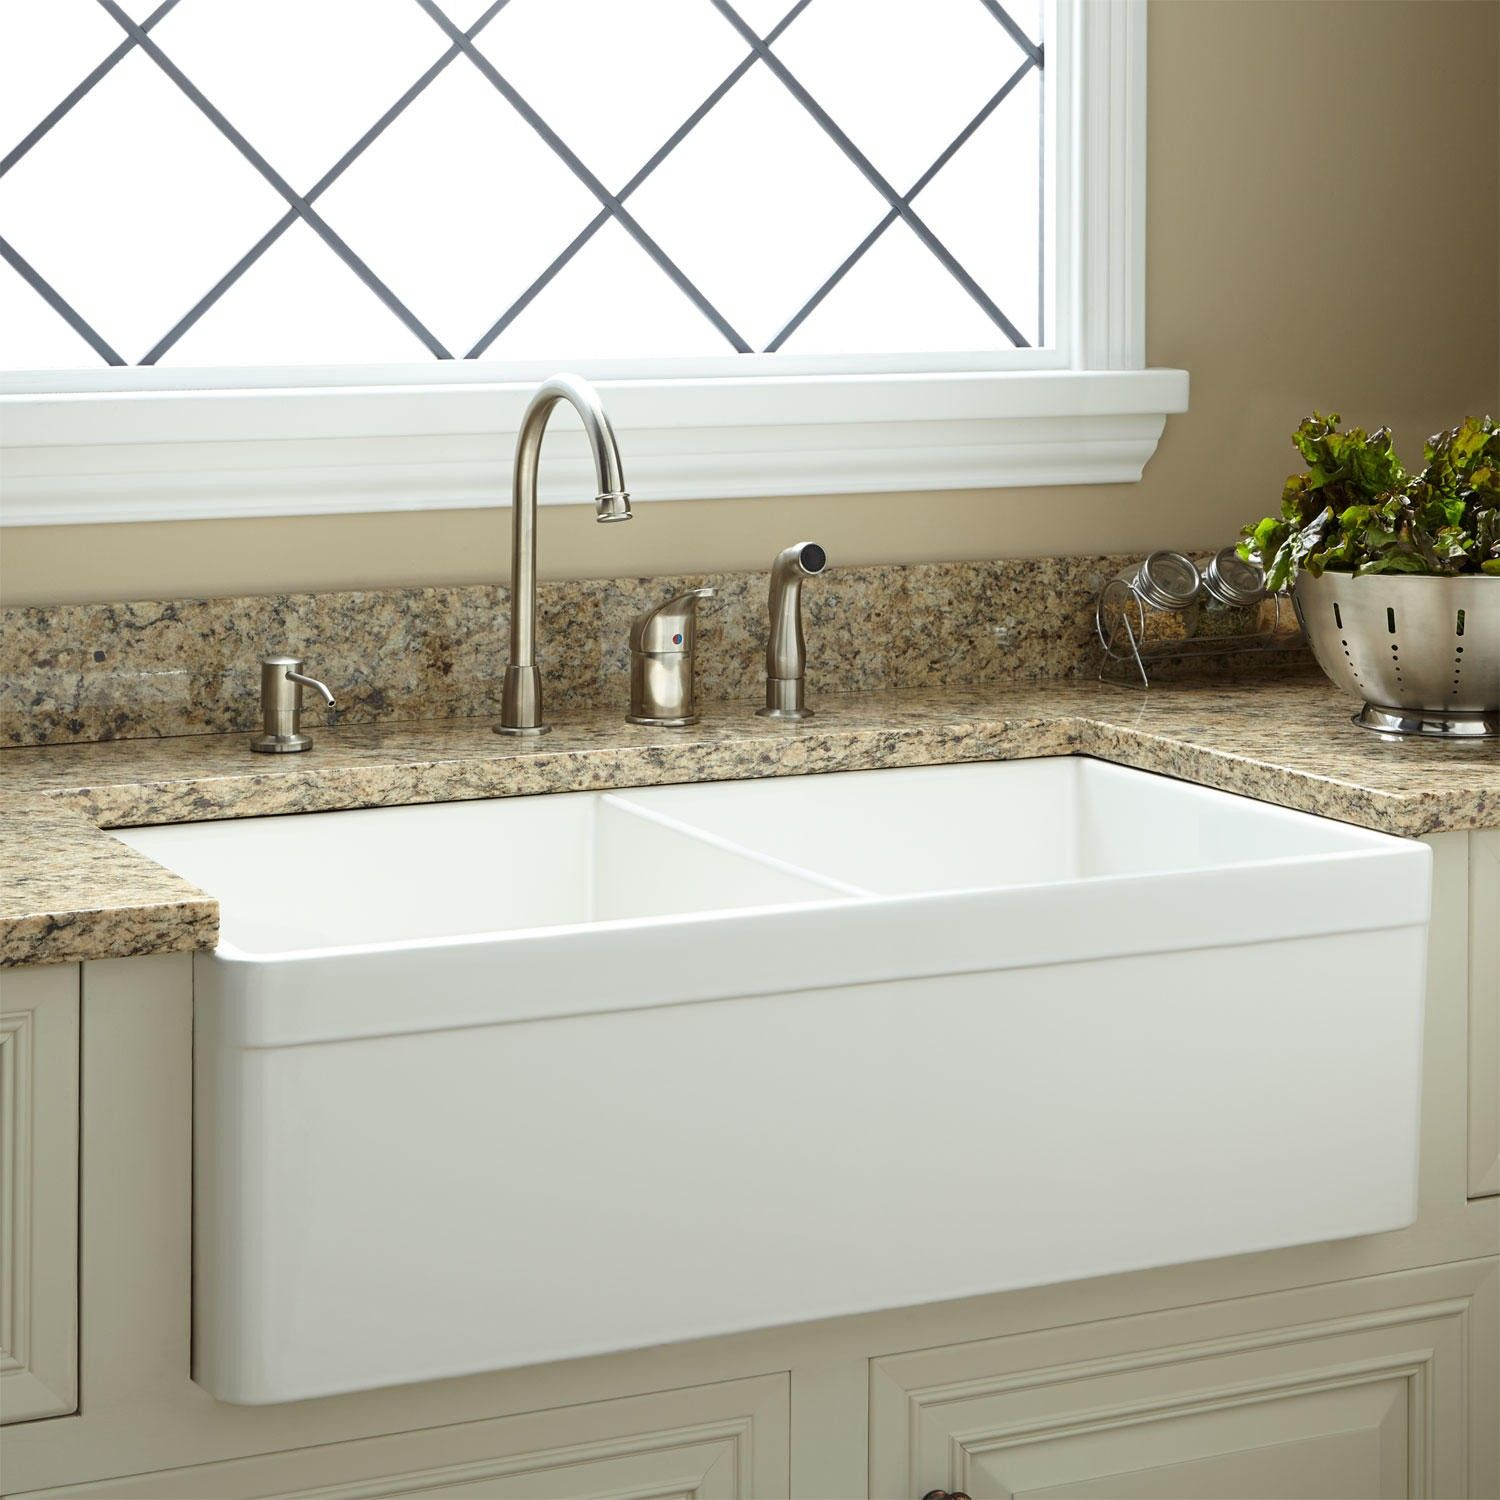 The White Baldwin Double Bowl Farmhouse Fireclay Sink Is The Perfect Fit  For A Busy Kitchen.